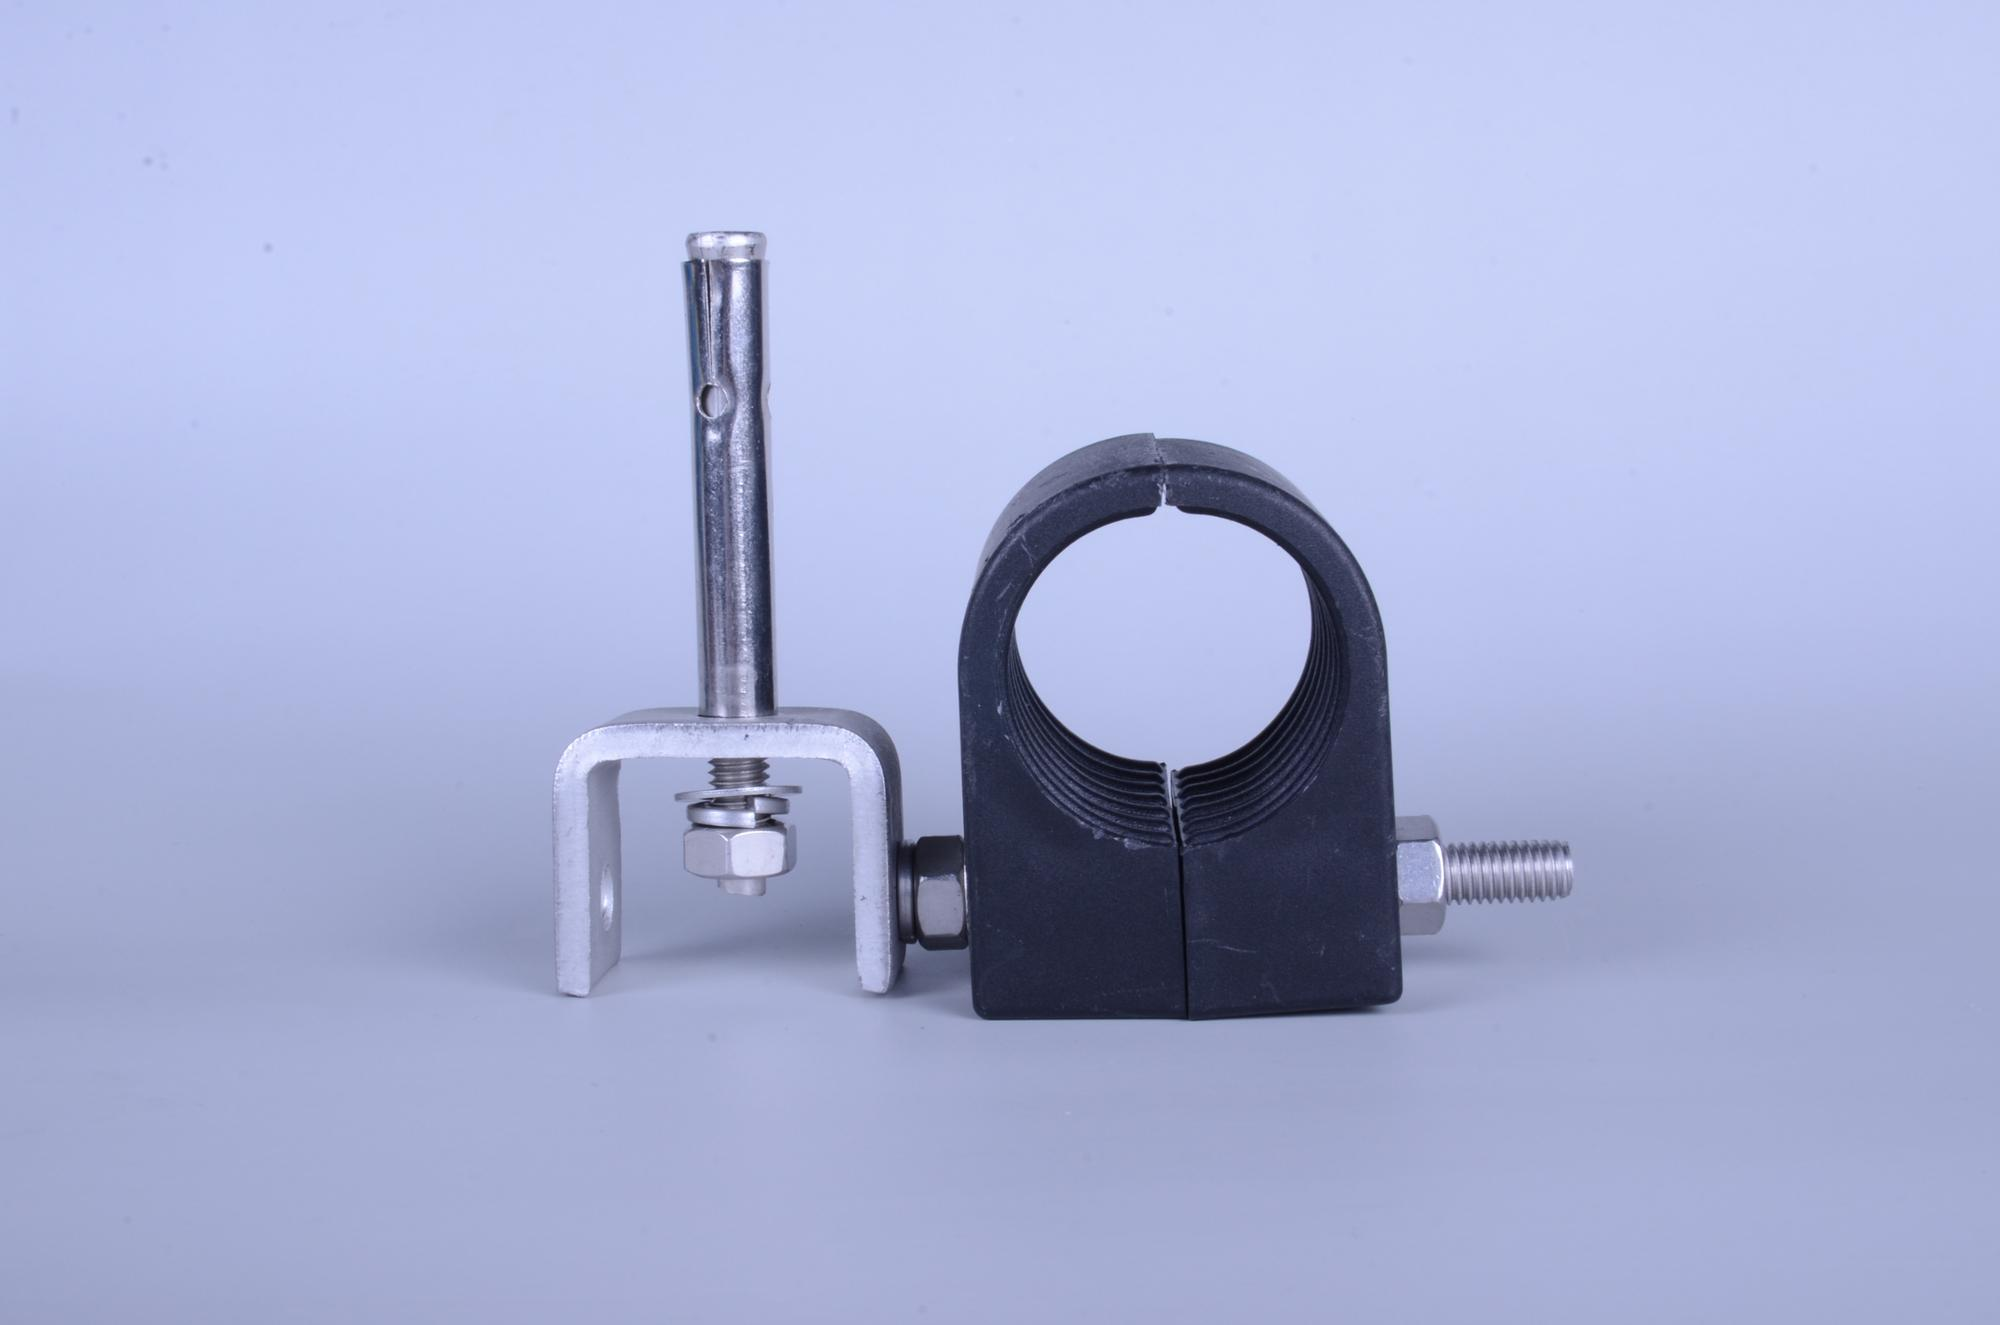 feeder cable clamp/fiber optical cable and power cable clamp